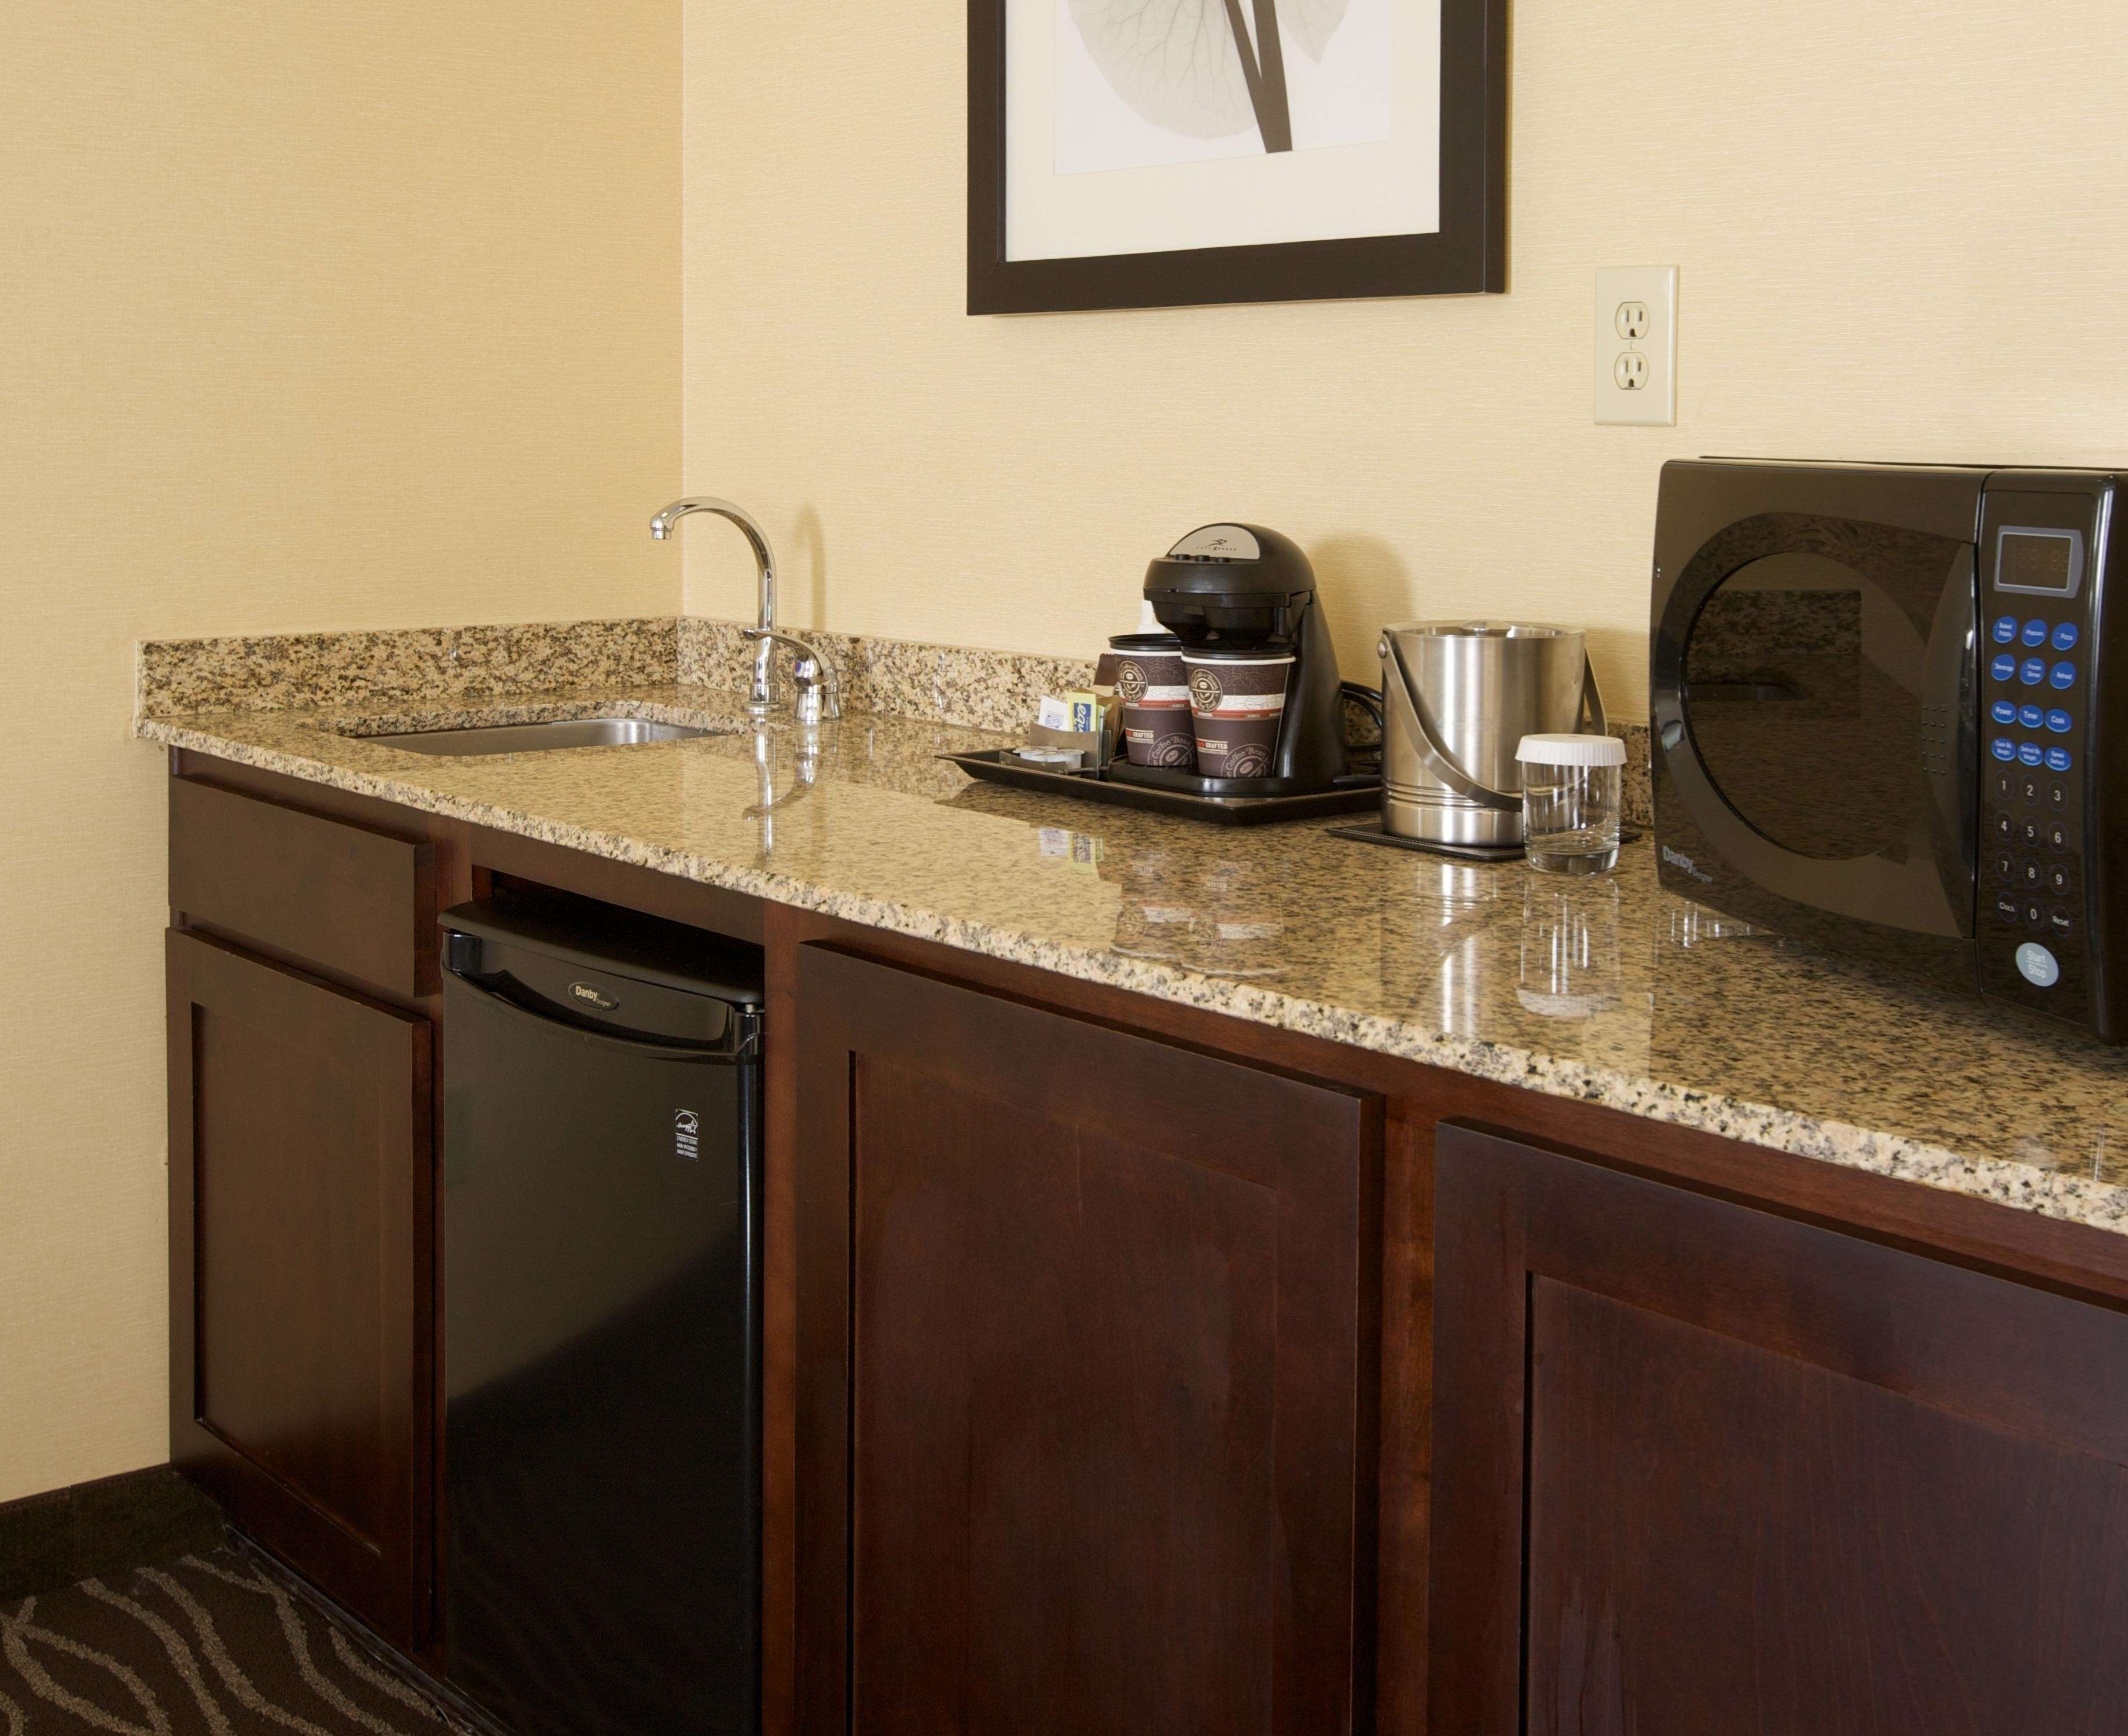 DoubleTree Suites by Hilton Hotel Raleigh - Durham image 33